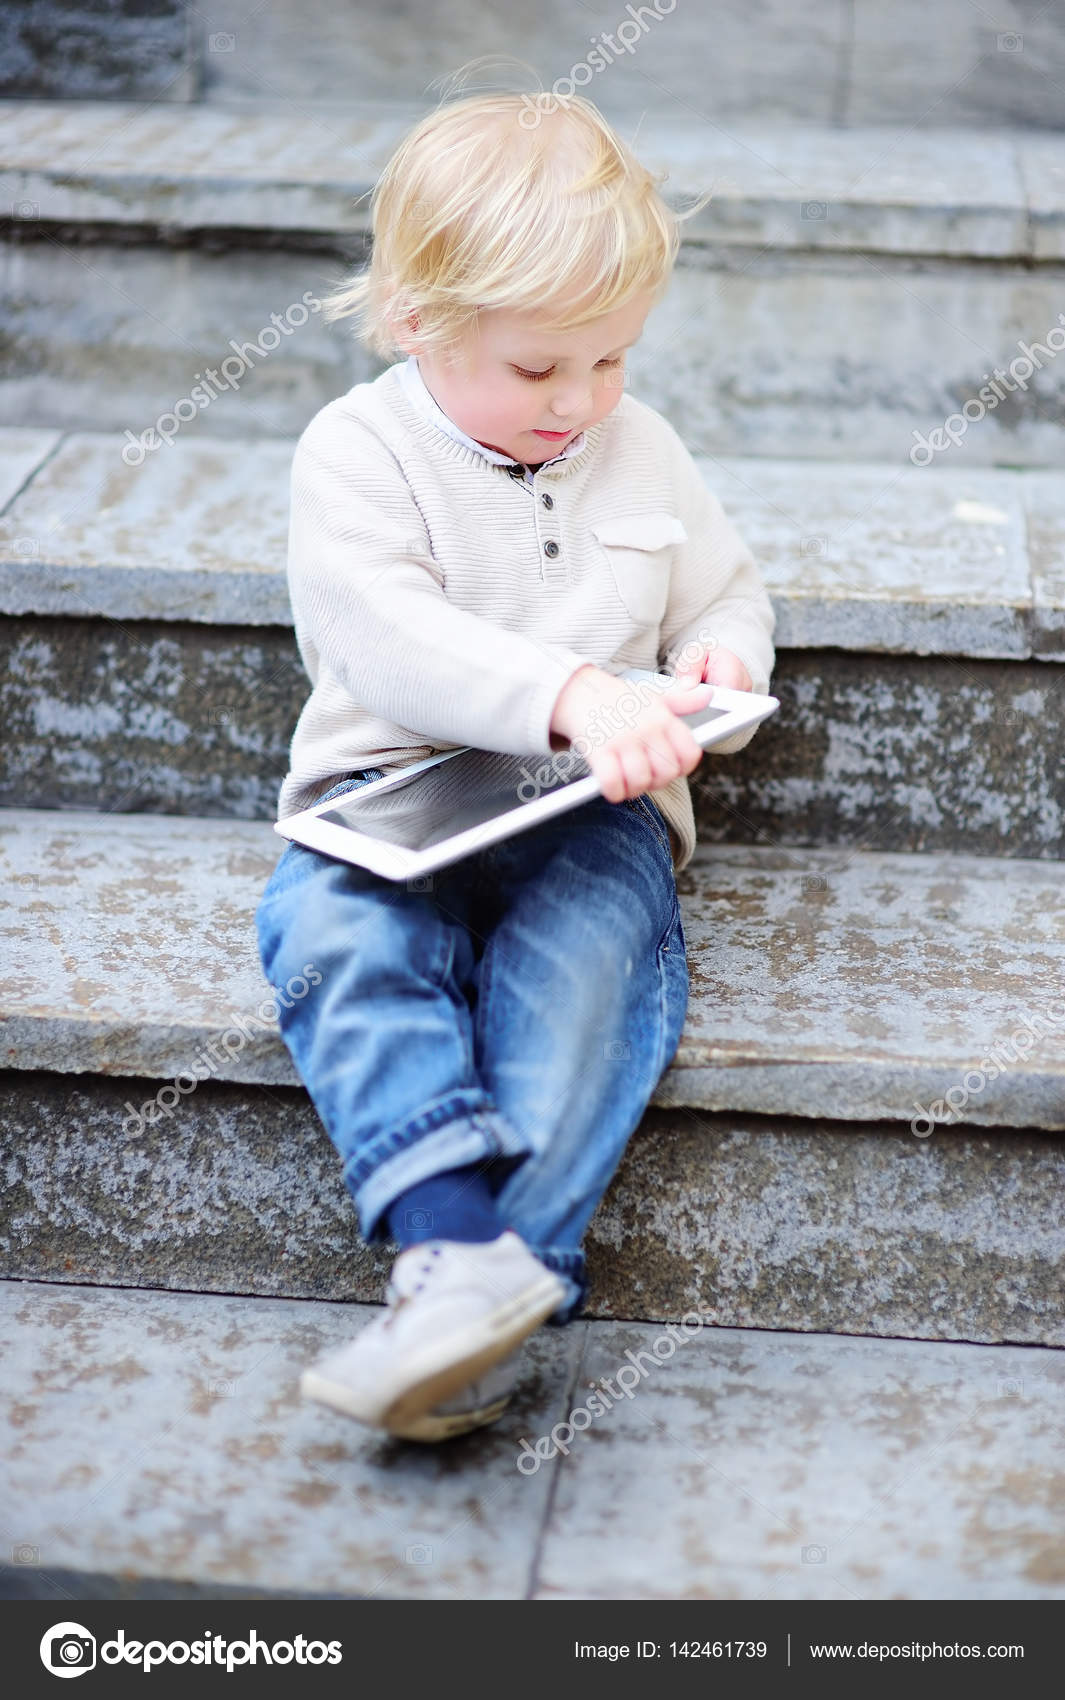 fdb42efb2ed0 Cute blonde toddler boy playing with a digital tablet outdoors– stock image